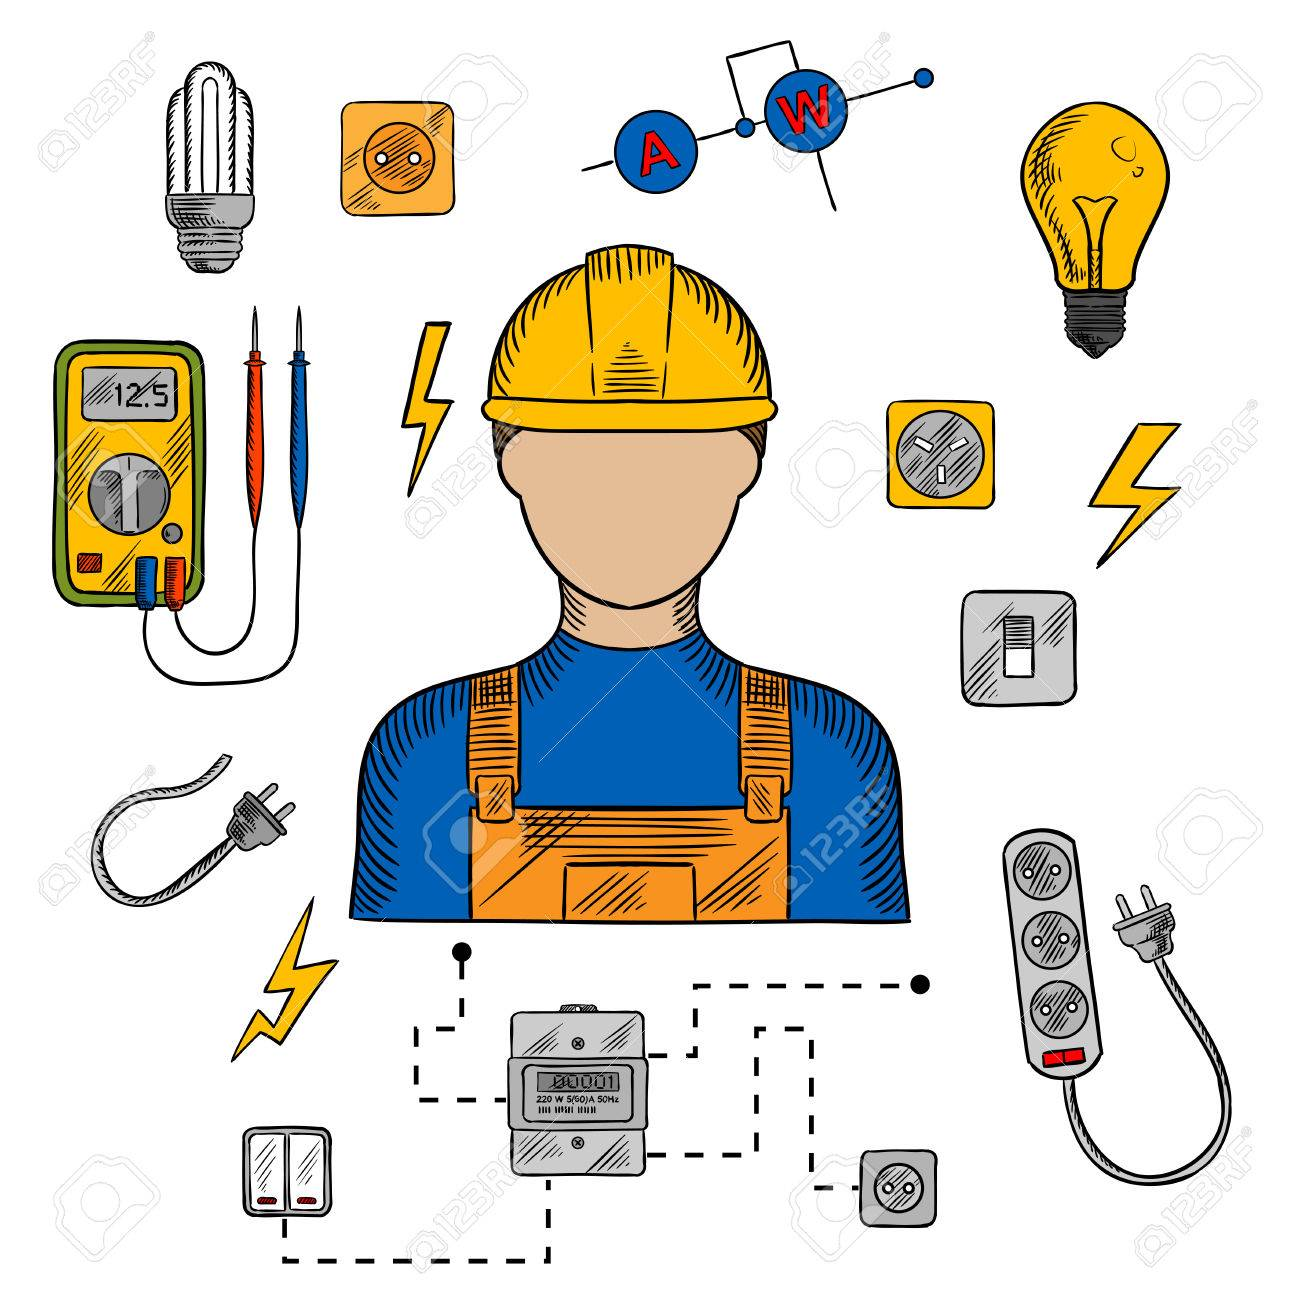 Electrician profession icons with electric man in yellow hard.. on basic electronic symbols, kitchen symbols, lighting symbols, residential electric symbols, residential drafting symbols, circuit symbols, heating and cooling symbols, carpentry symbols, electronic component symbols, household appliances, printable wiring diagram symbols, industrial wiring symbols, voice and data symbols, clothing symbols, tools symbols, bathroom symbols, residential wiring symbols, automotive symbols, wallpaper symbols, electronic schematic symbols,